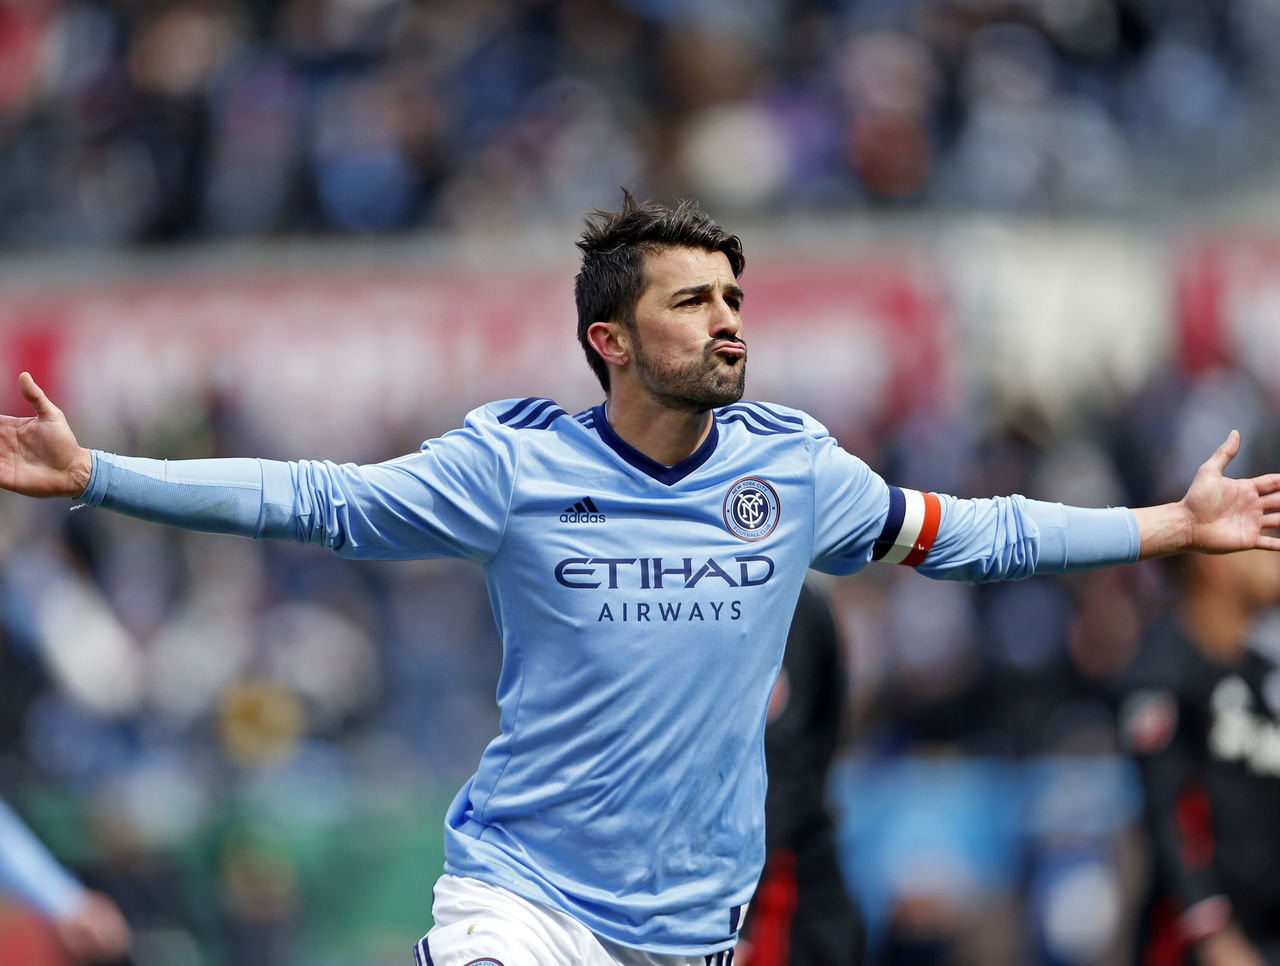 David Villa earns Spain recall after 3 year absence